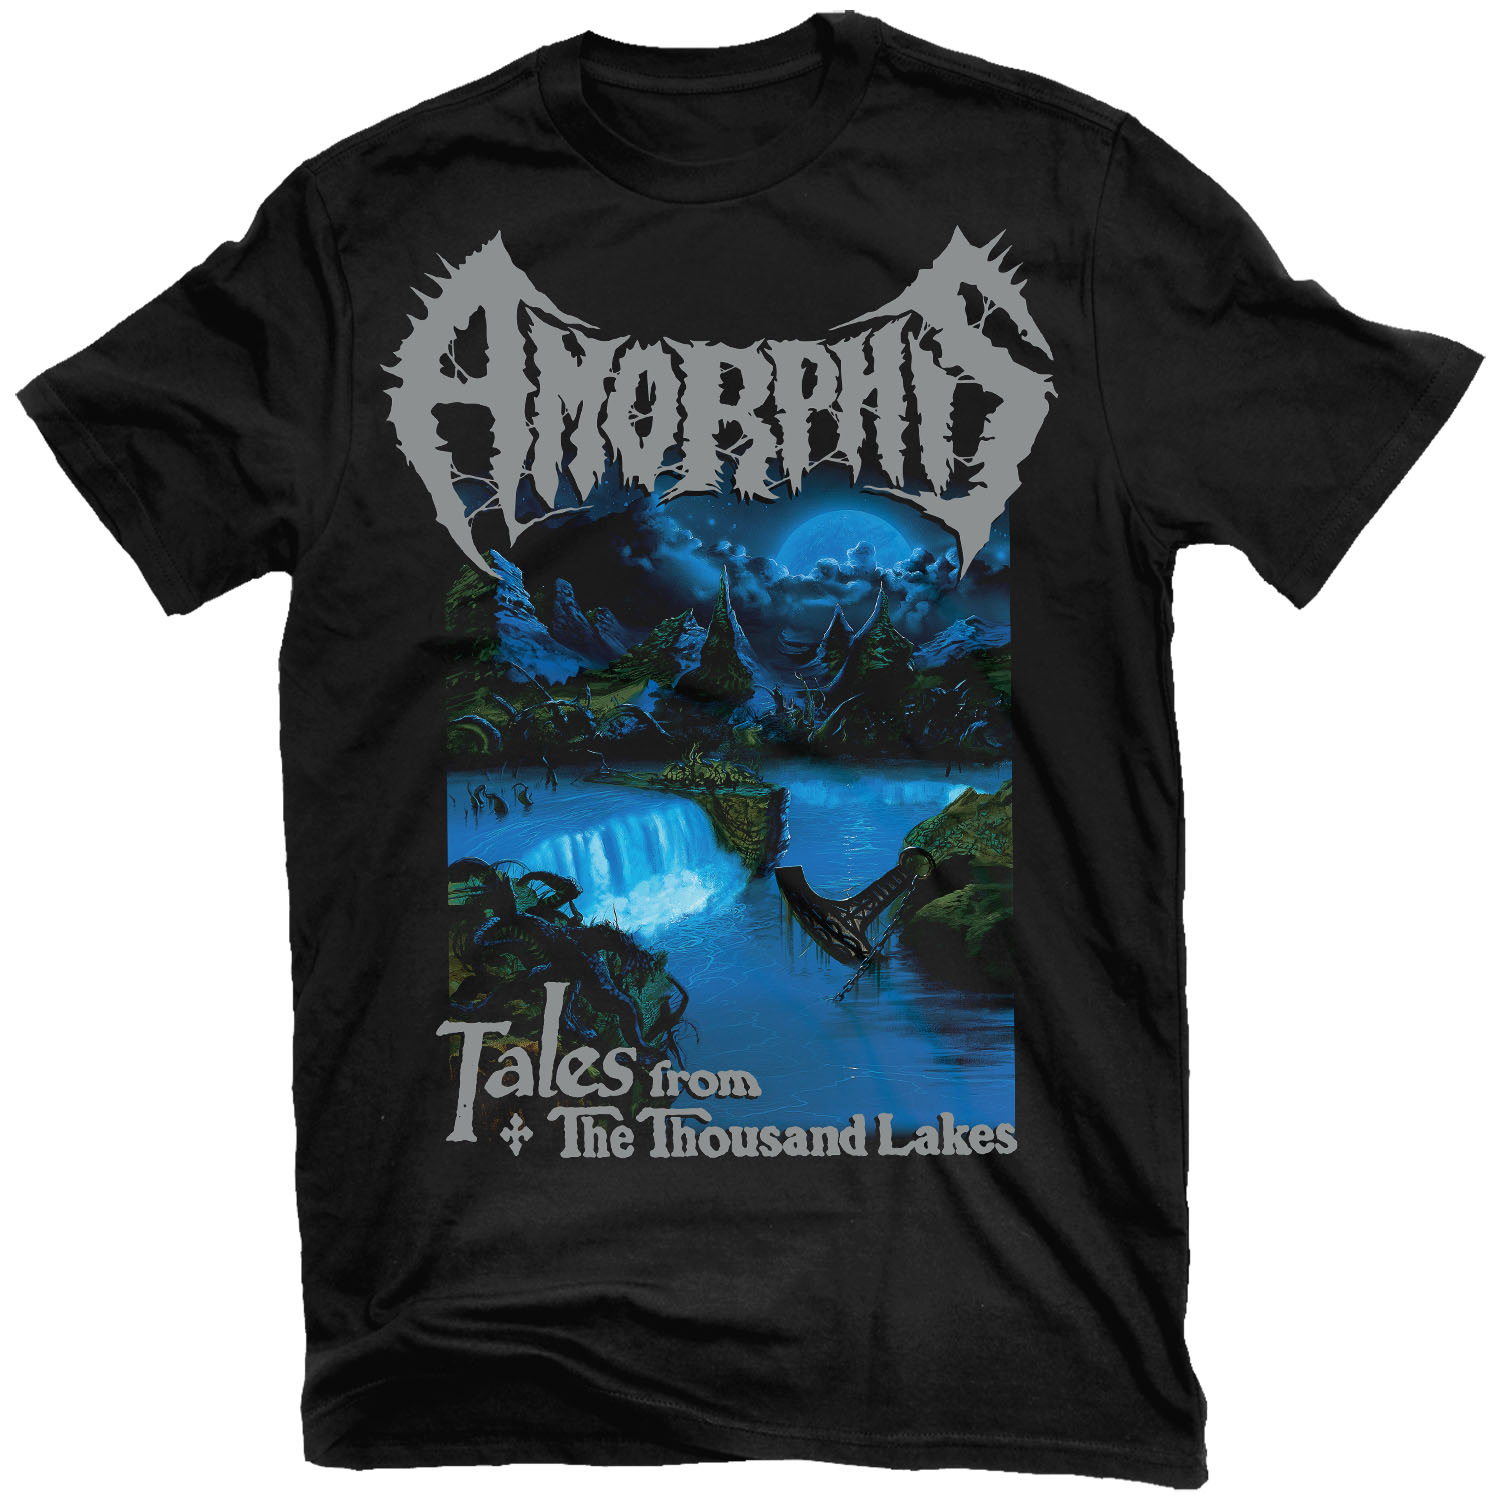 Tales From The Thousand Lakes T Shirt + LP Reissue Bundle